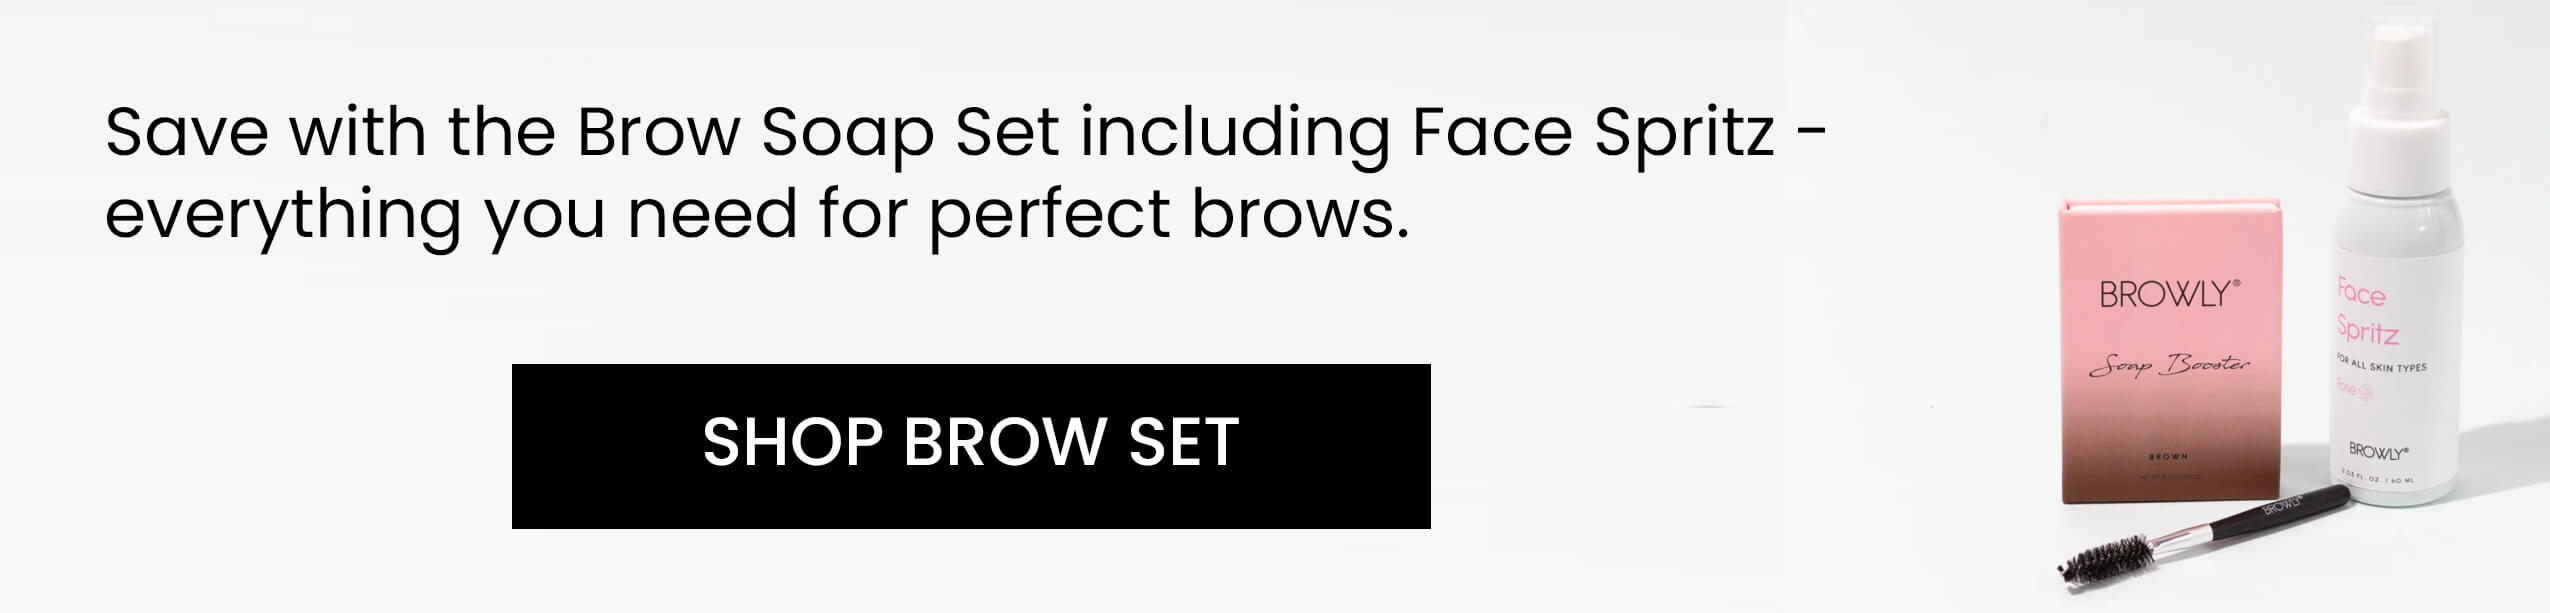 Upgrade to the Brow Soap Set in brown